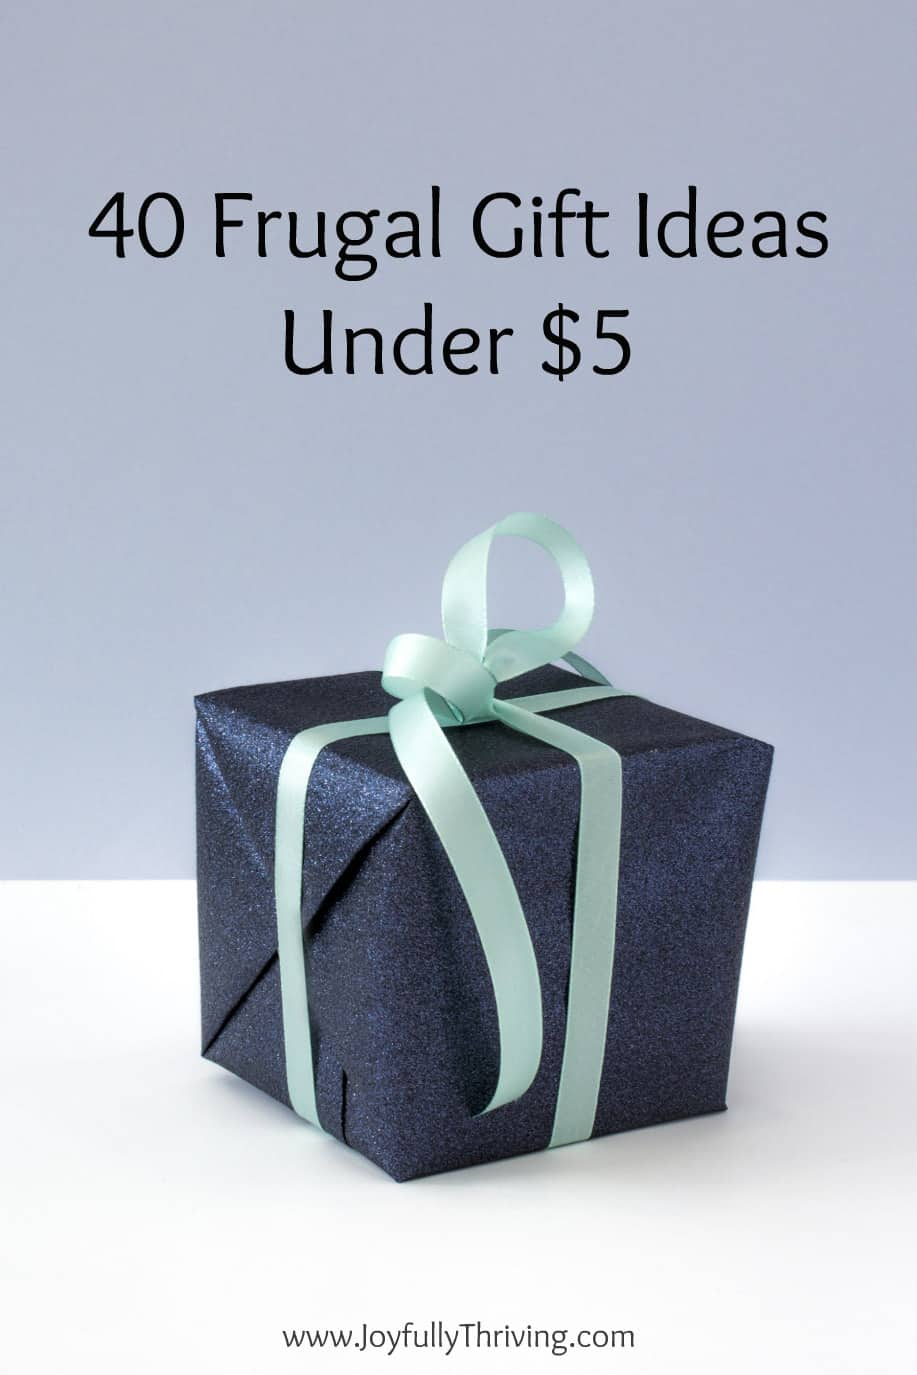 Great gift list! So many ideas for gifts under $5. This is worth pinning for later. #giftlist #diygifts